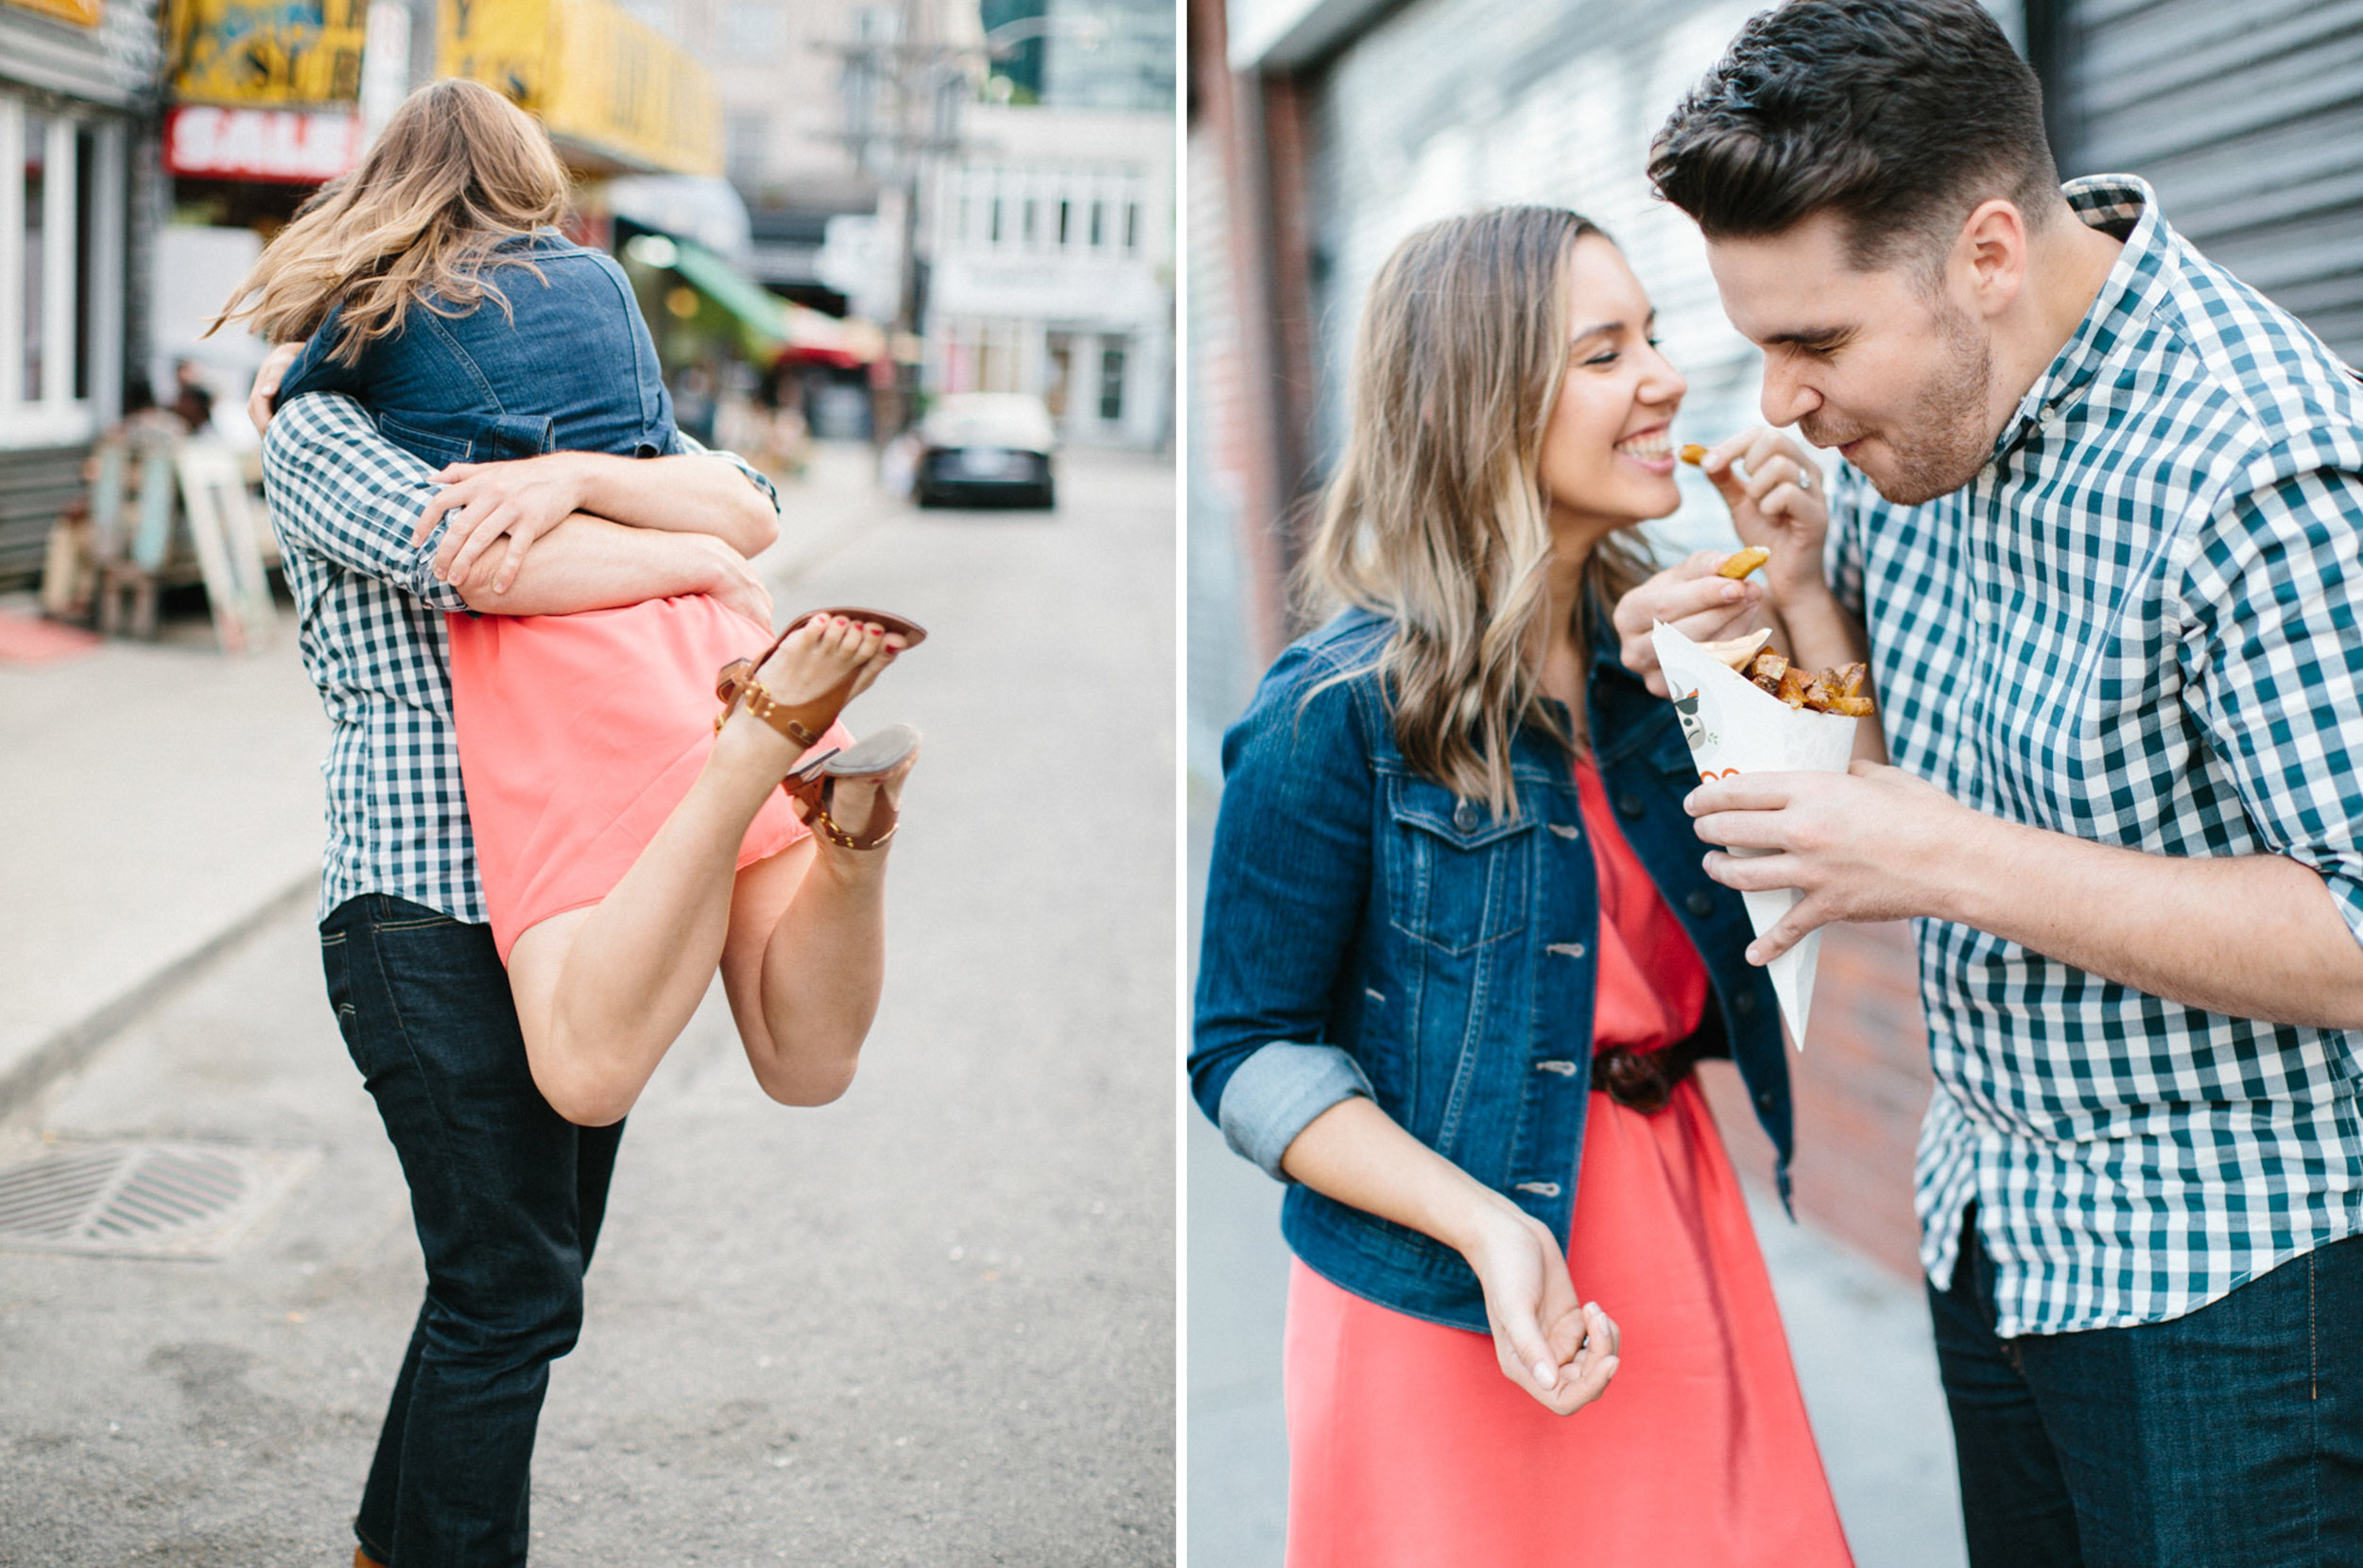 toronto_wedding_photographer_engagement_photography_tips5.jpg